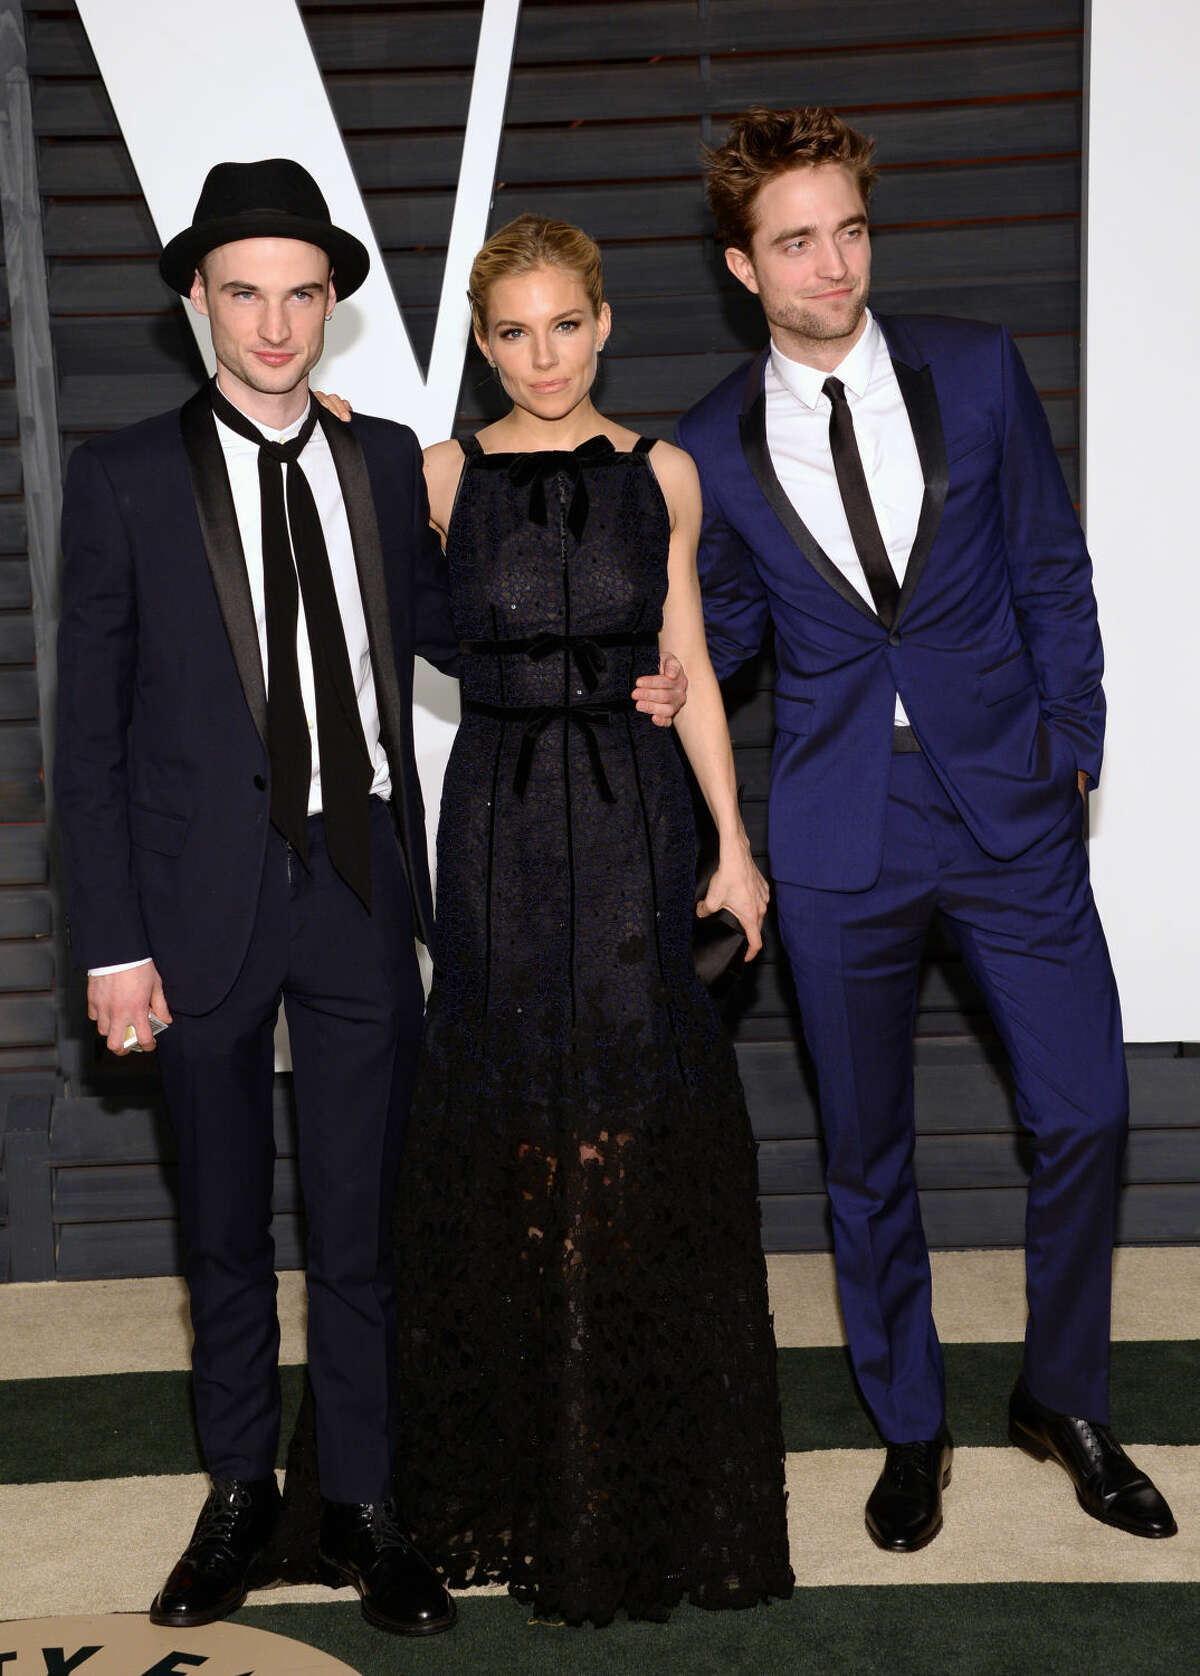 Tom Sturridge, from left, Sienna Miller, and Robert Pattinson arrive at the 2015 Vanity Fair Oscar Party on Sunday, Feb. 22, 2015, in Beverly Hills, Calif. (Photo by Evan Agostini/Invision/AP)